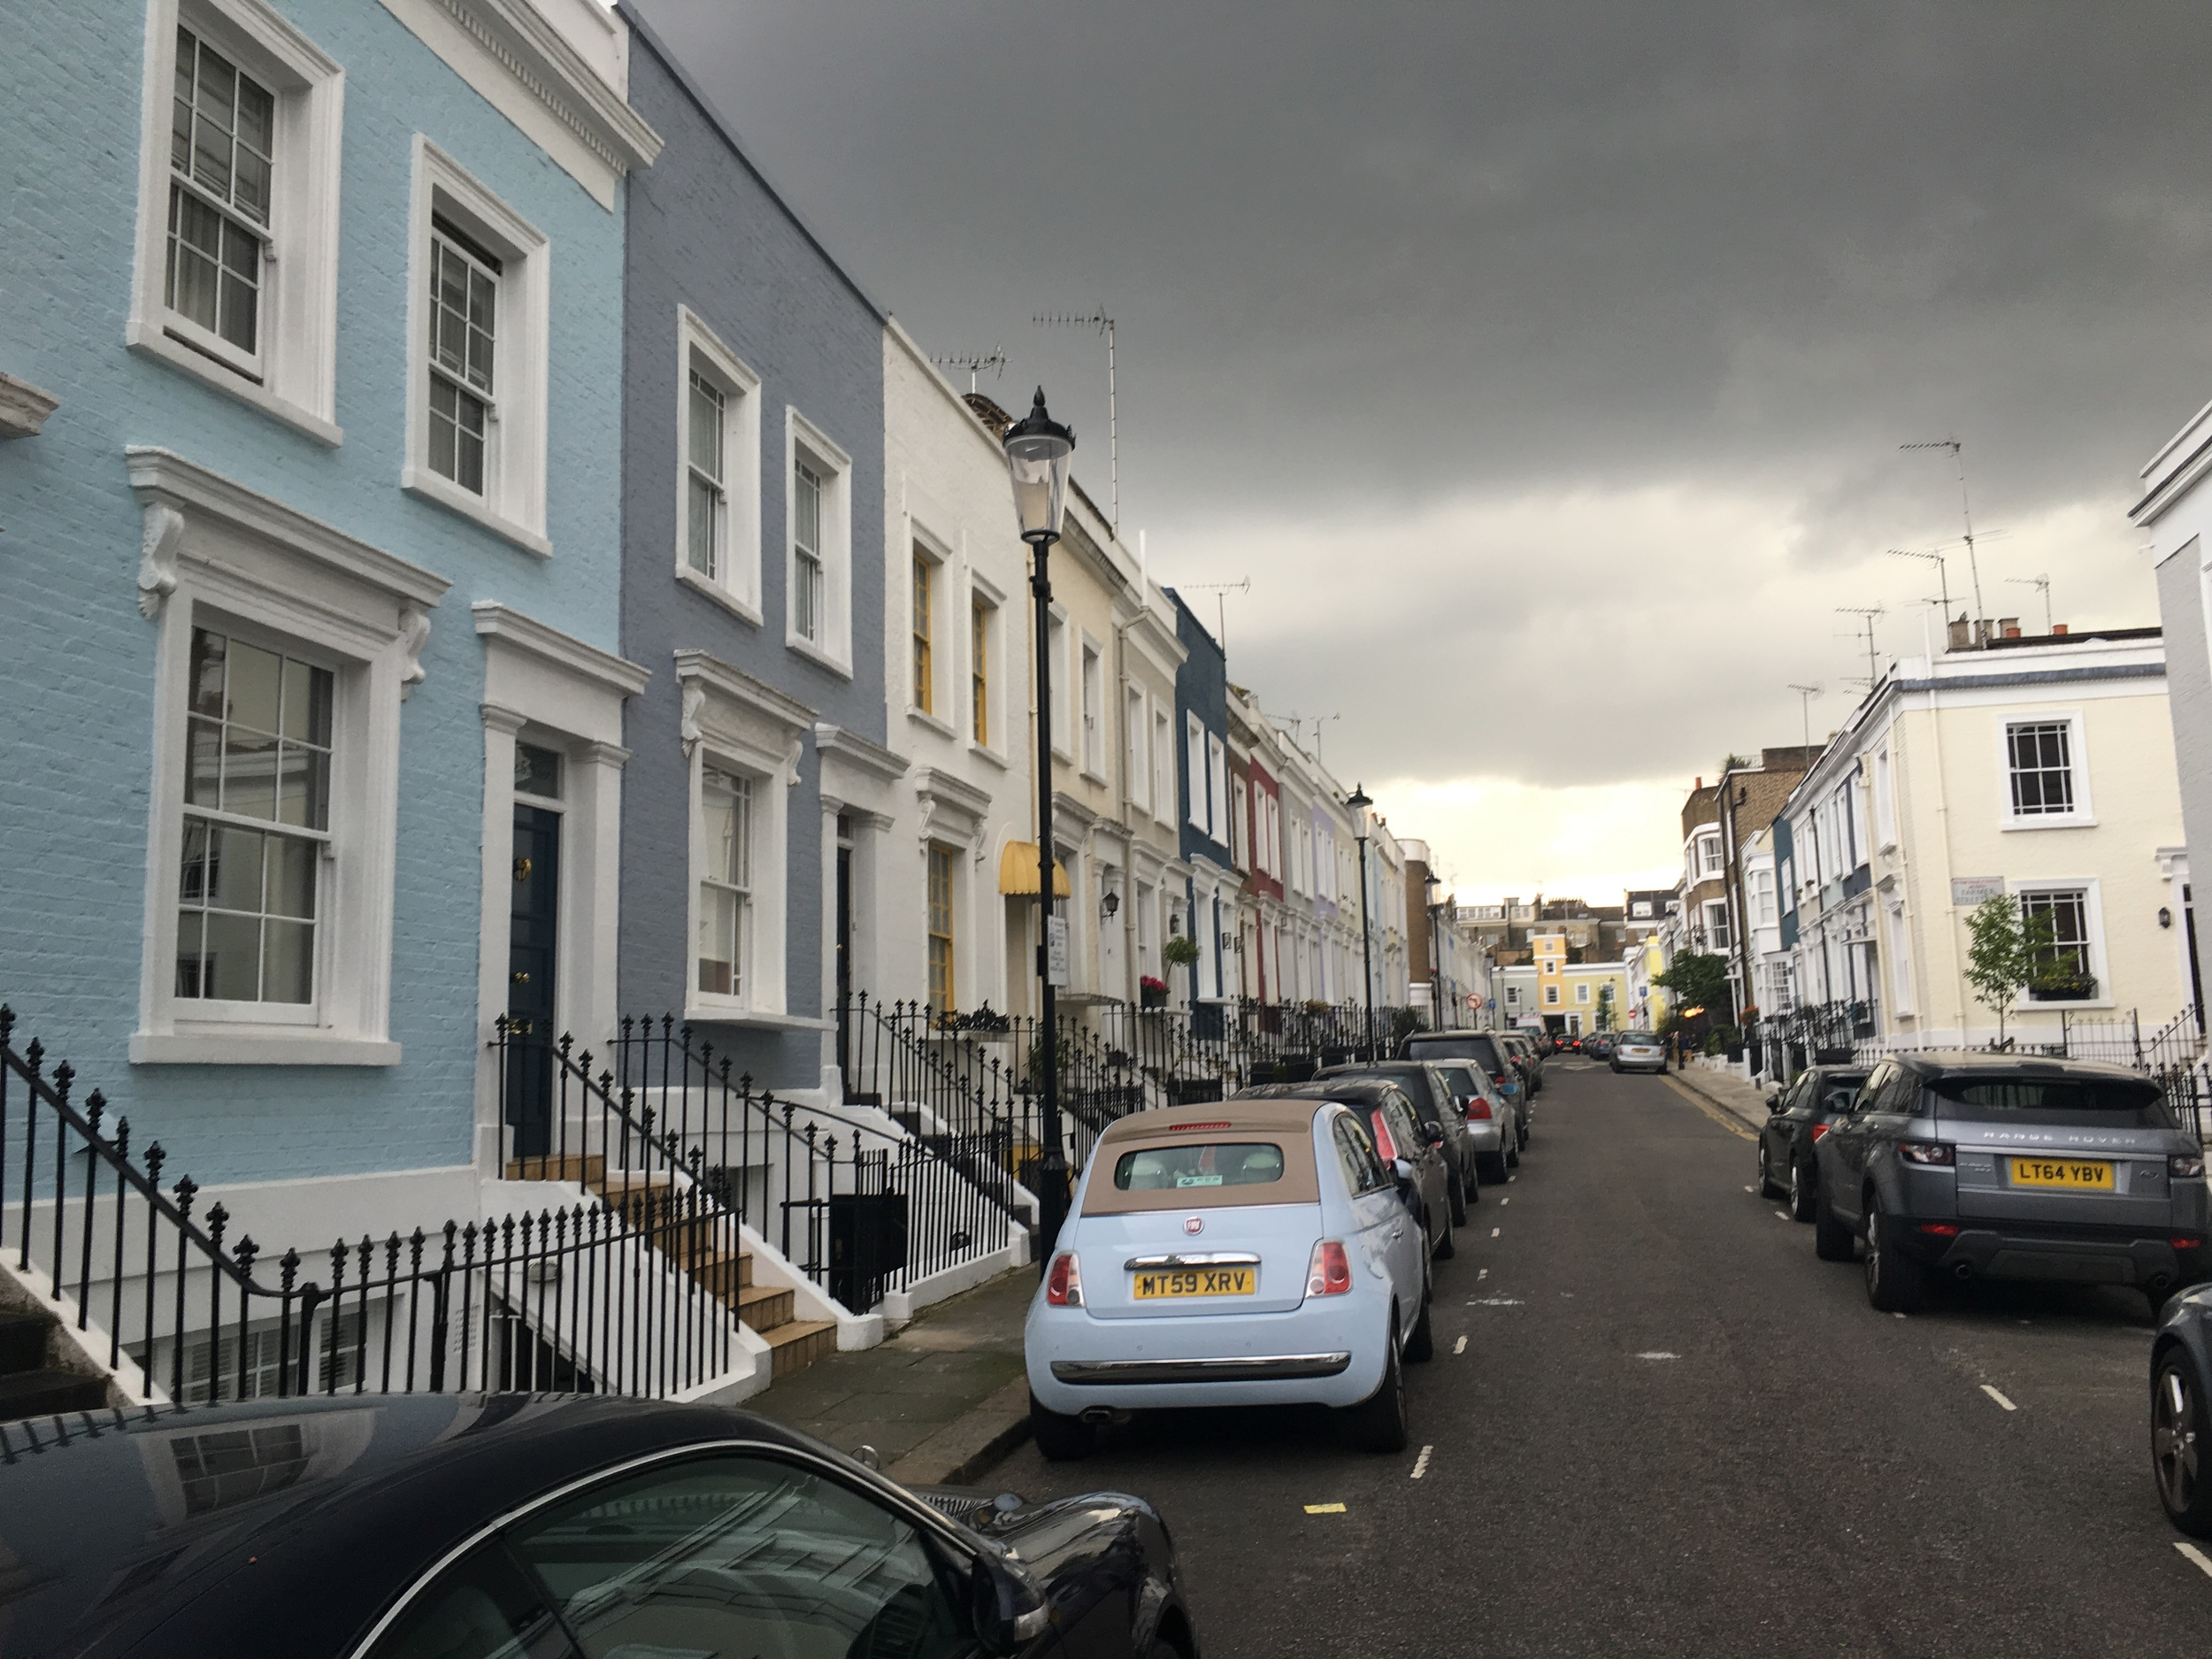 London about to rain